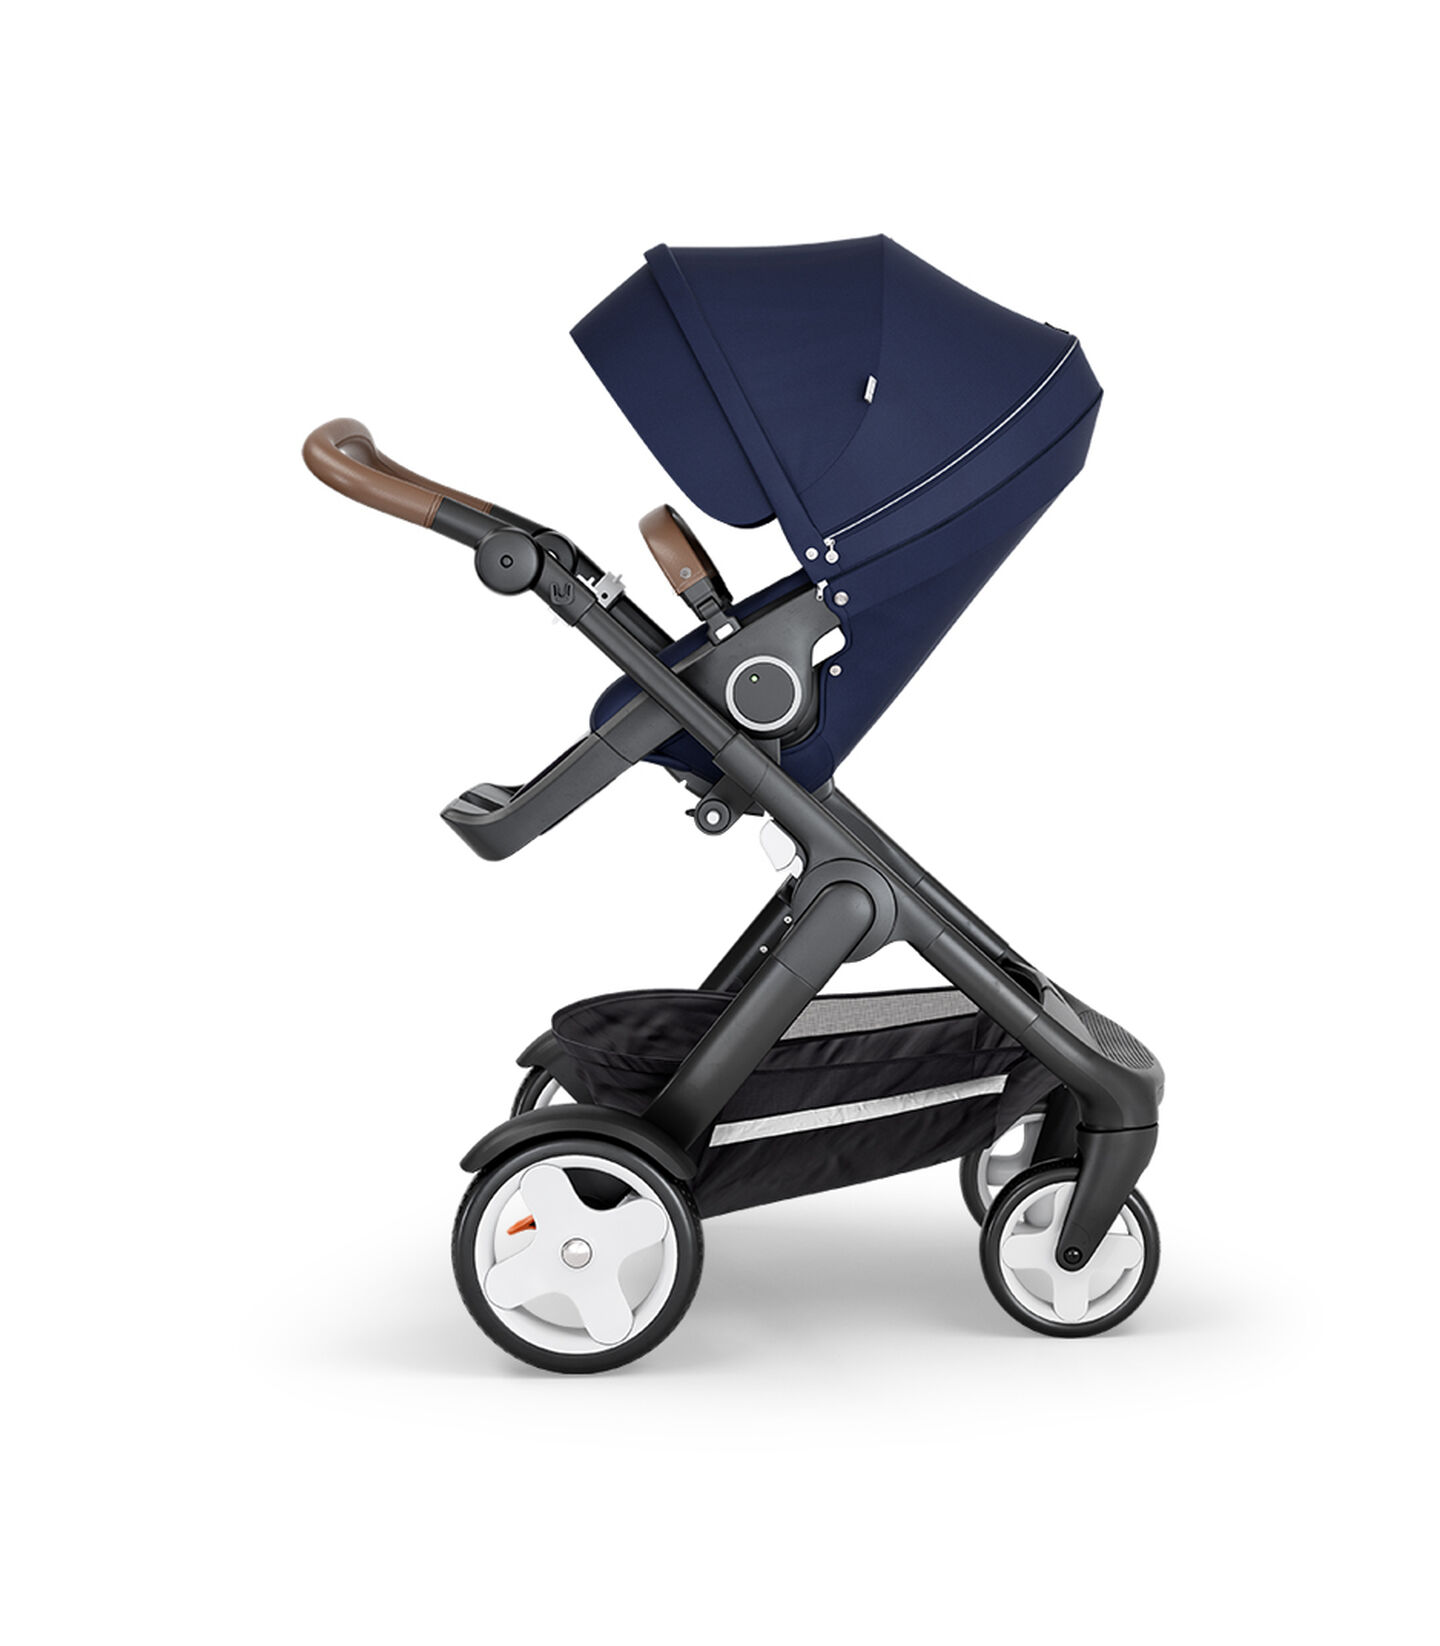 Stokke® Trailz™ with Black Chassis, Brown Leatherette and Classic Wheels. Stokke® Stroller Seat, Deep Blue.